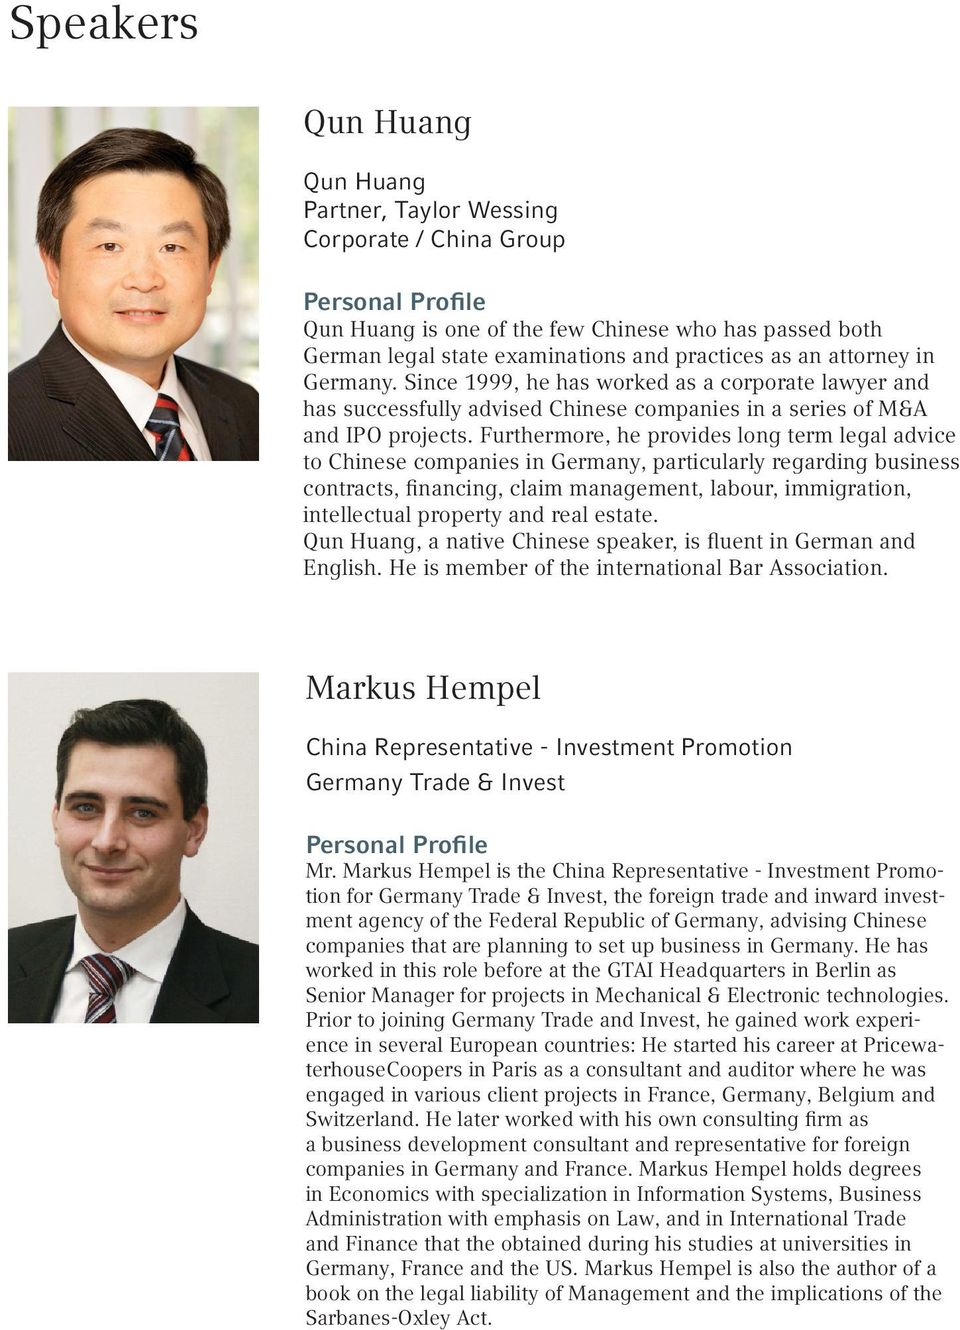 Furthermore, he provides long term legal advice to Chinese companies in Germany, particularly regarding business contracts, financing, claim management, labour, immigration, intellectual property and